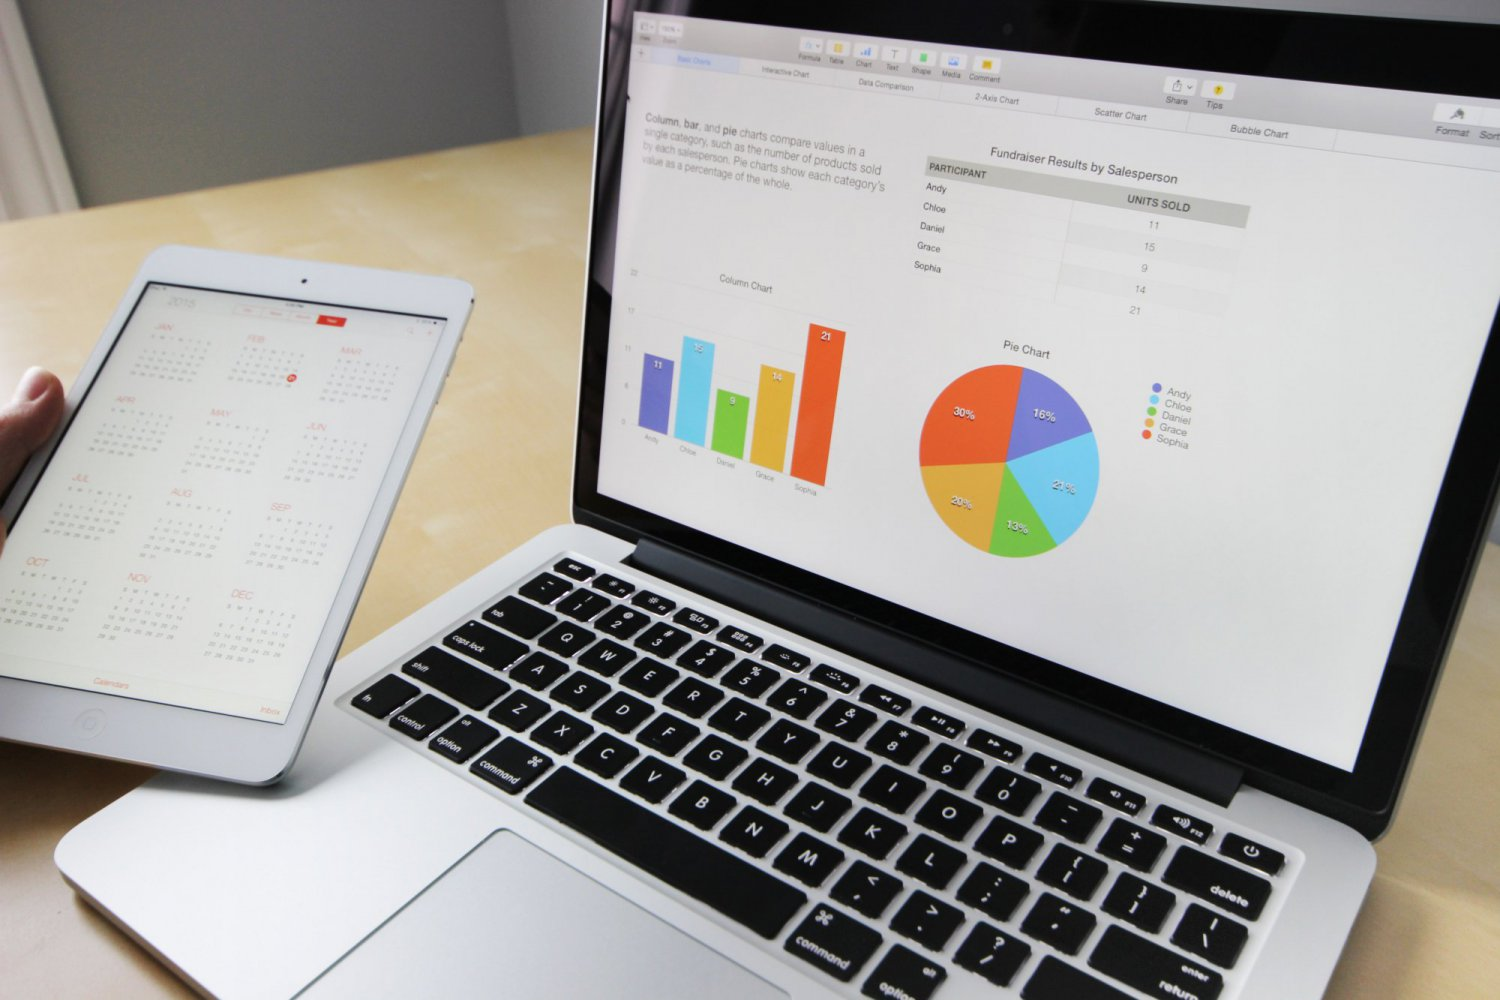 laptop and ipad with marketing statistics - pie chart and graph